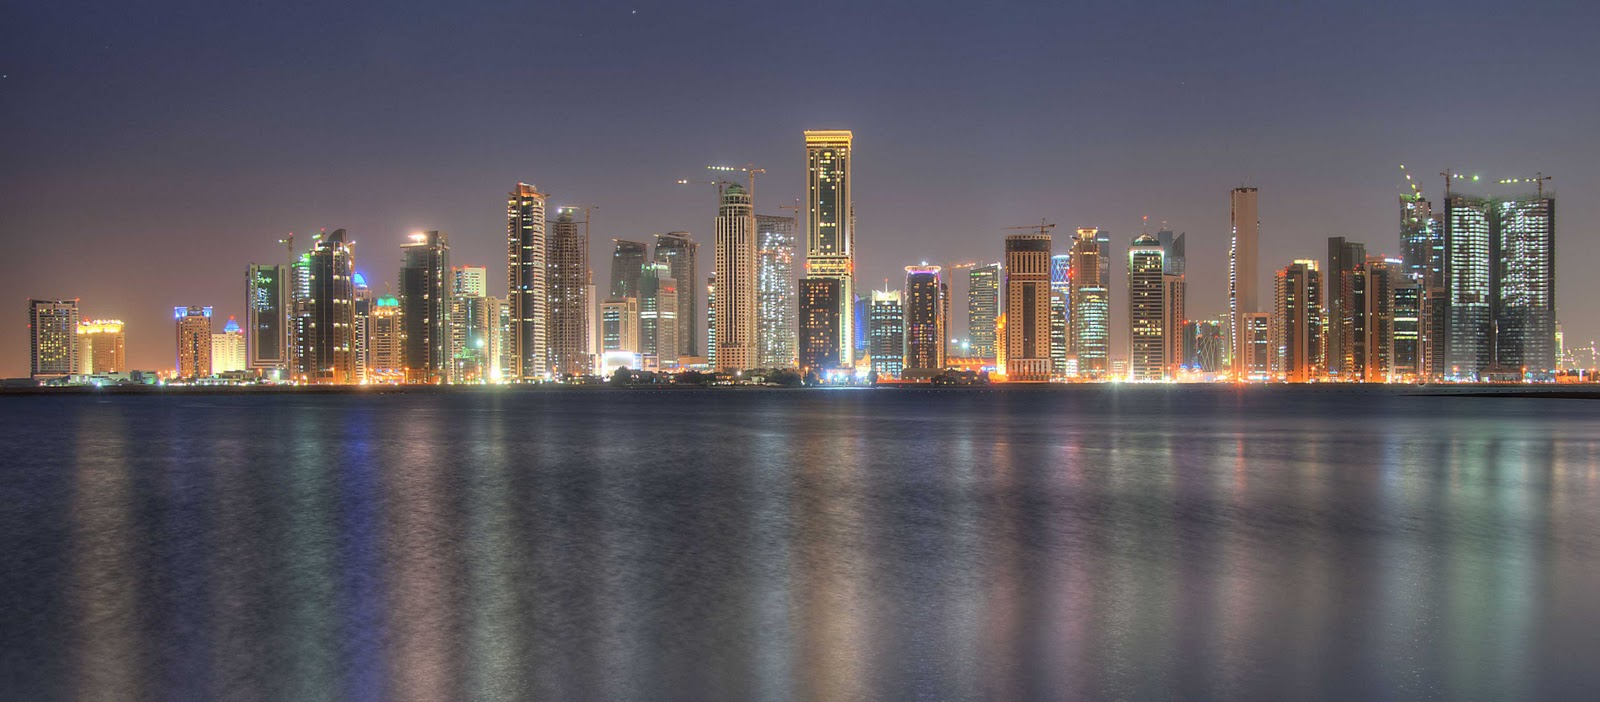 Image doha qatar skyline 1 jpg riordan wiki fandom powered by